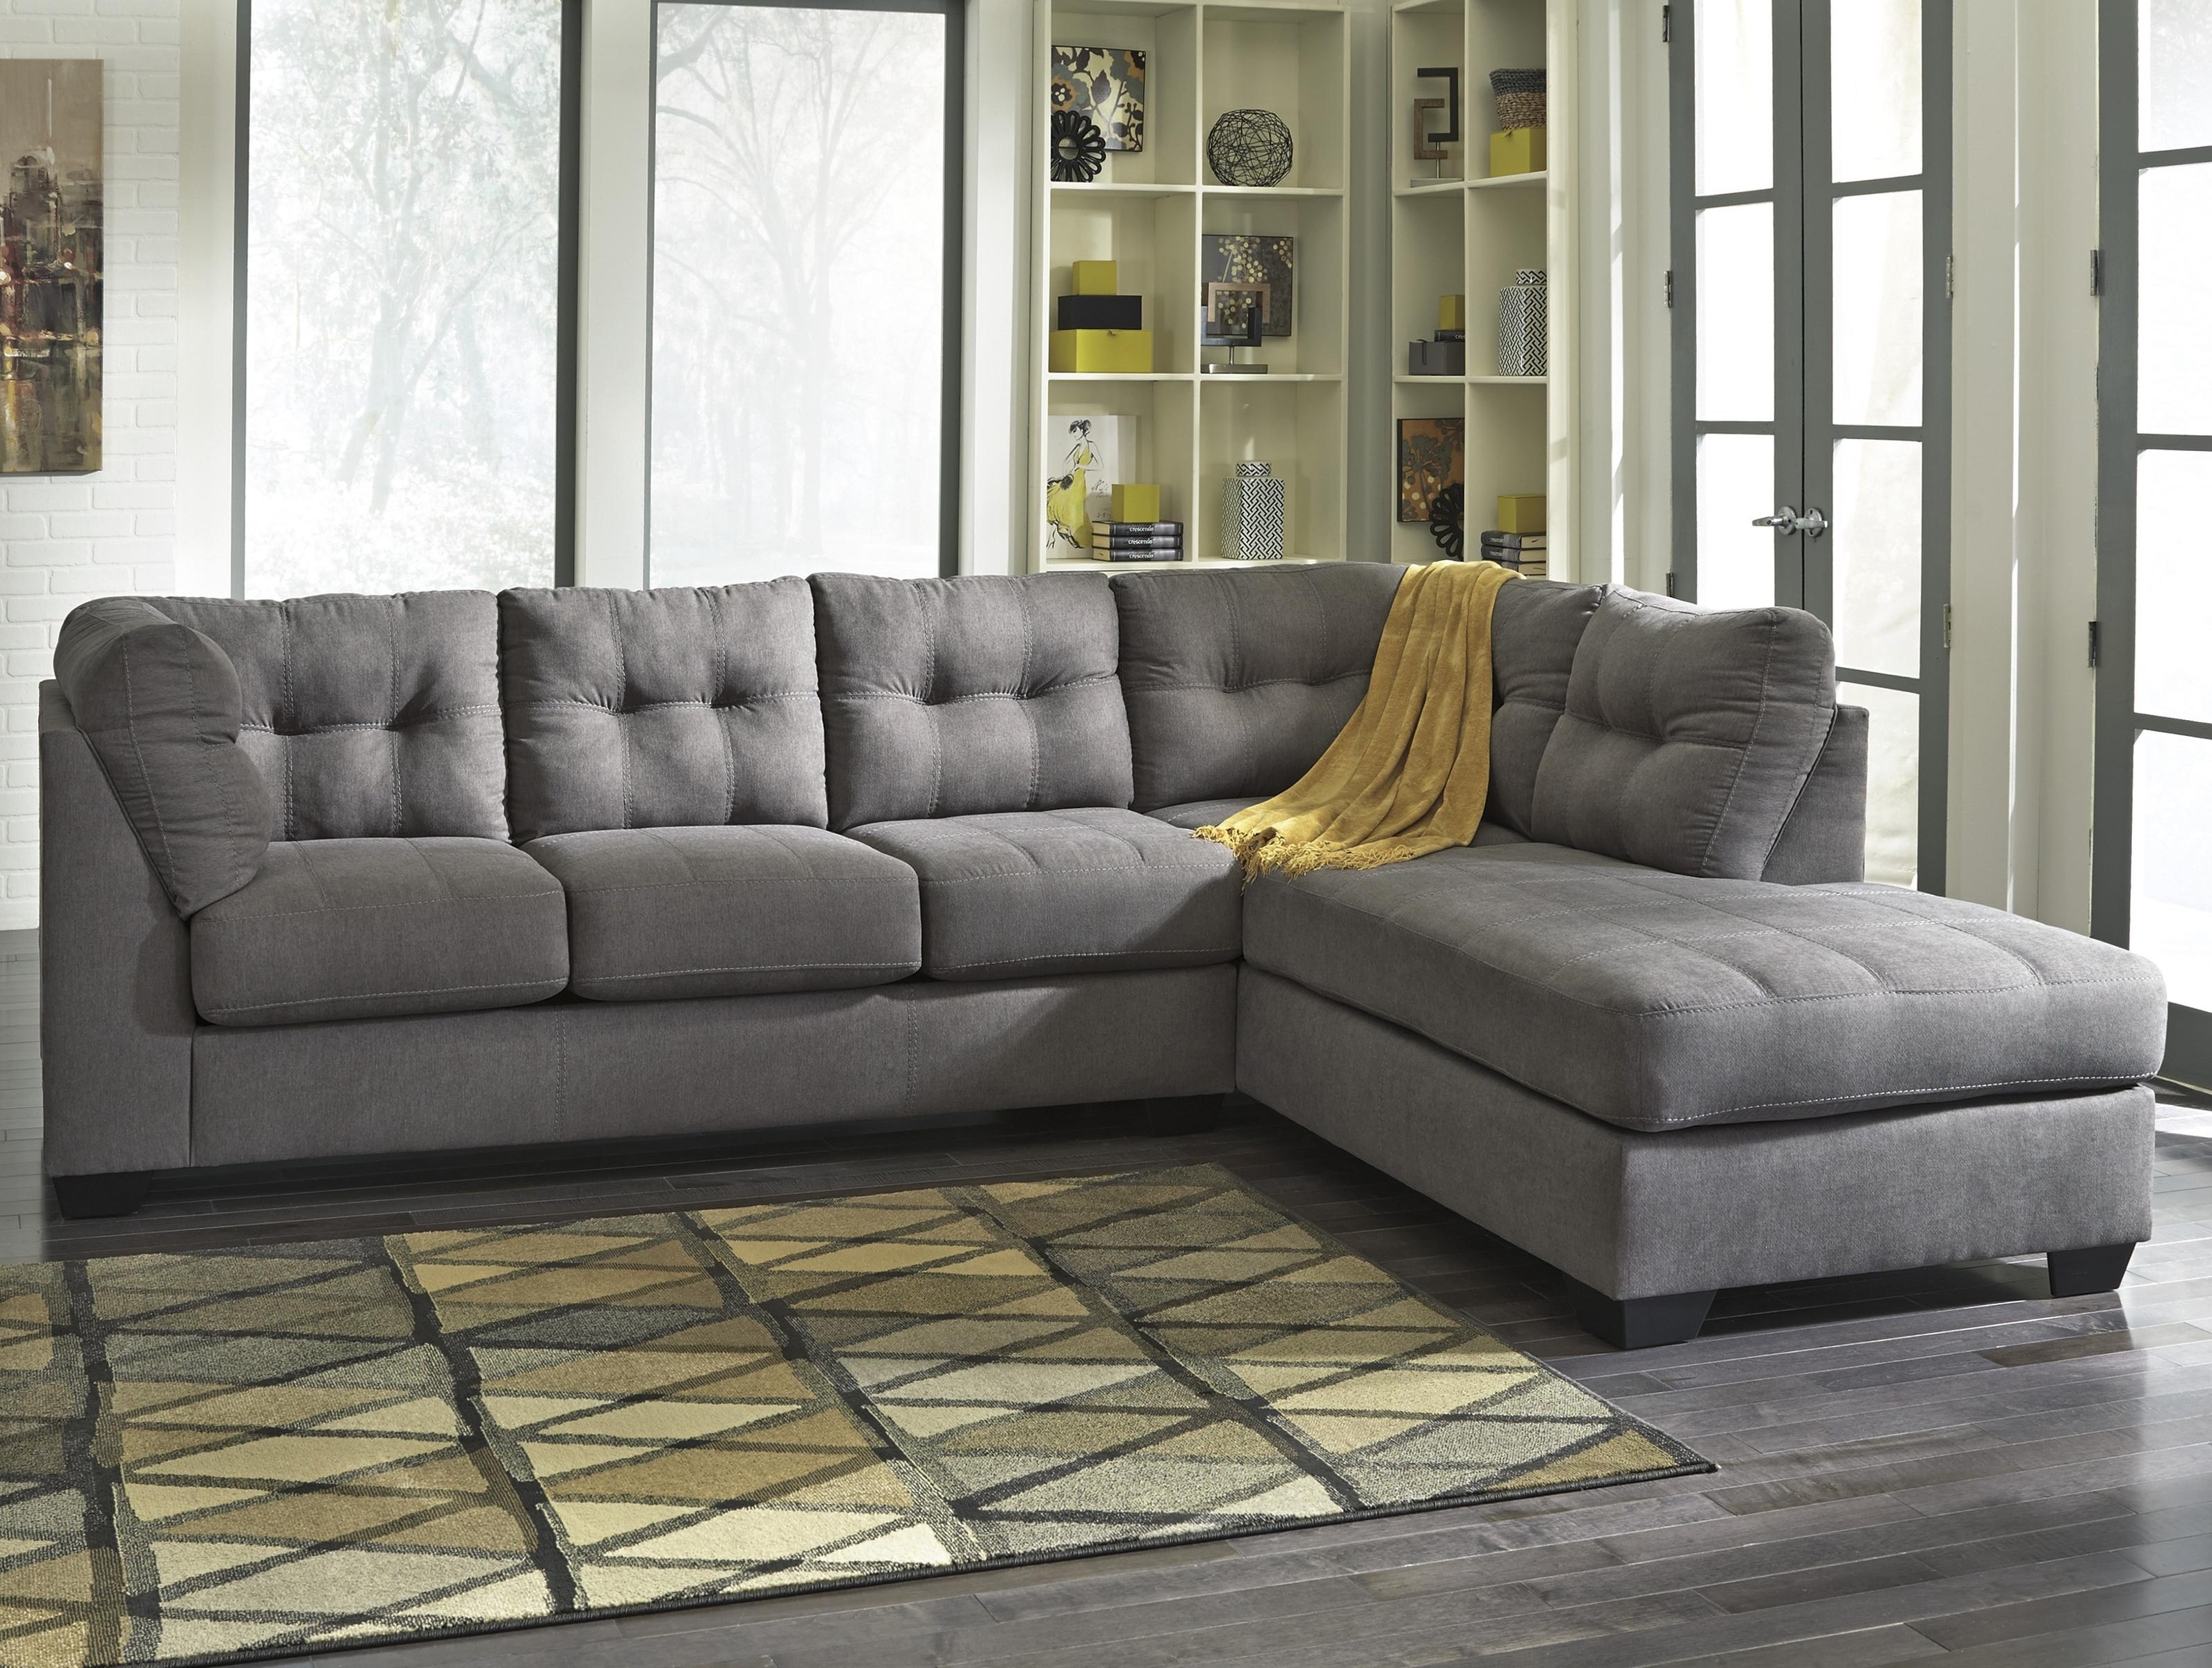 Sectional Sofa Design: Left Sectional Sofa Side Chaise Handed Regarding Best And Newest Sleek Sectional Sofas (View 13 of 20)